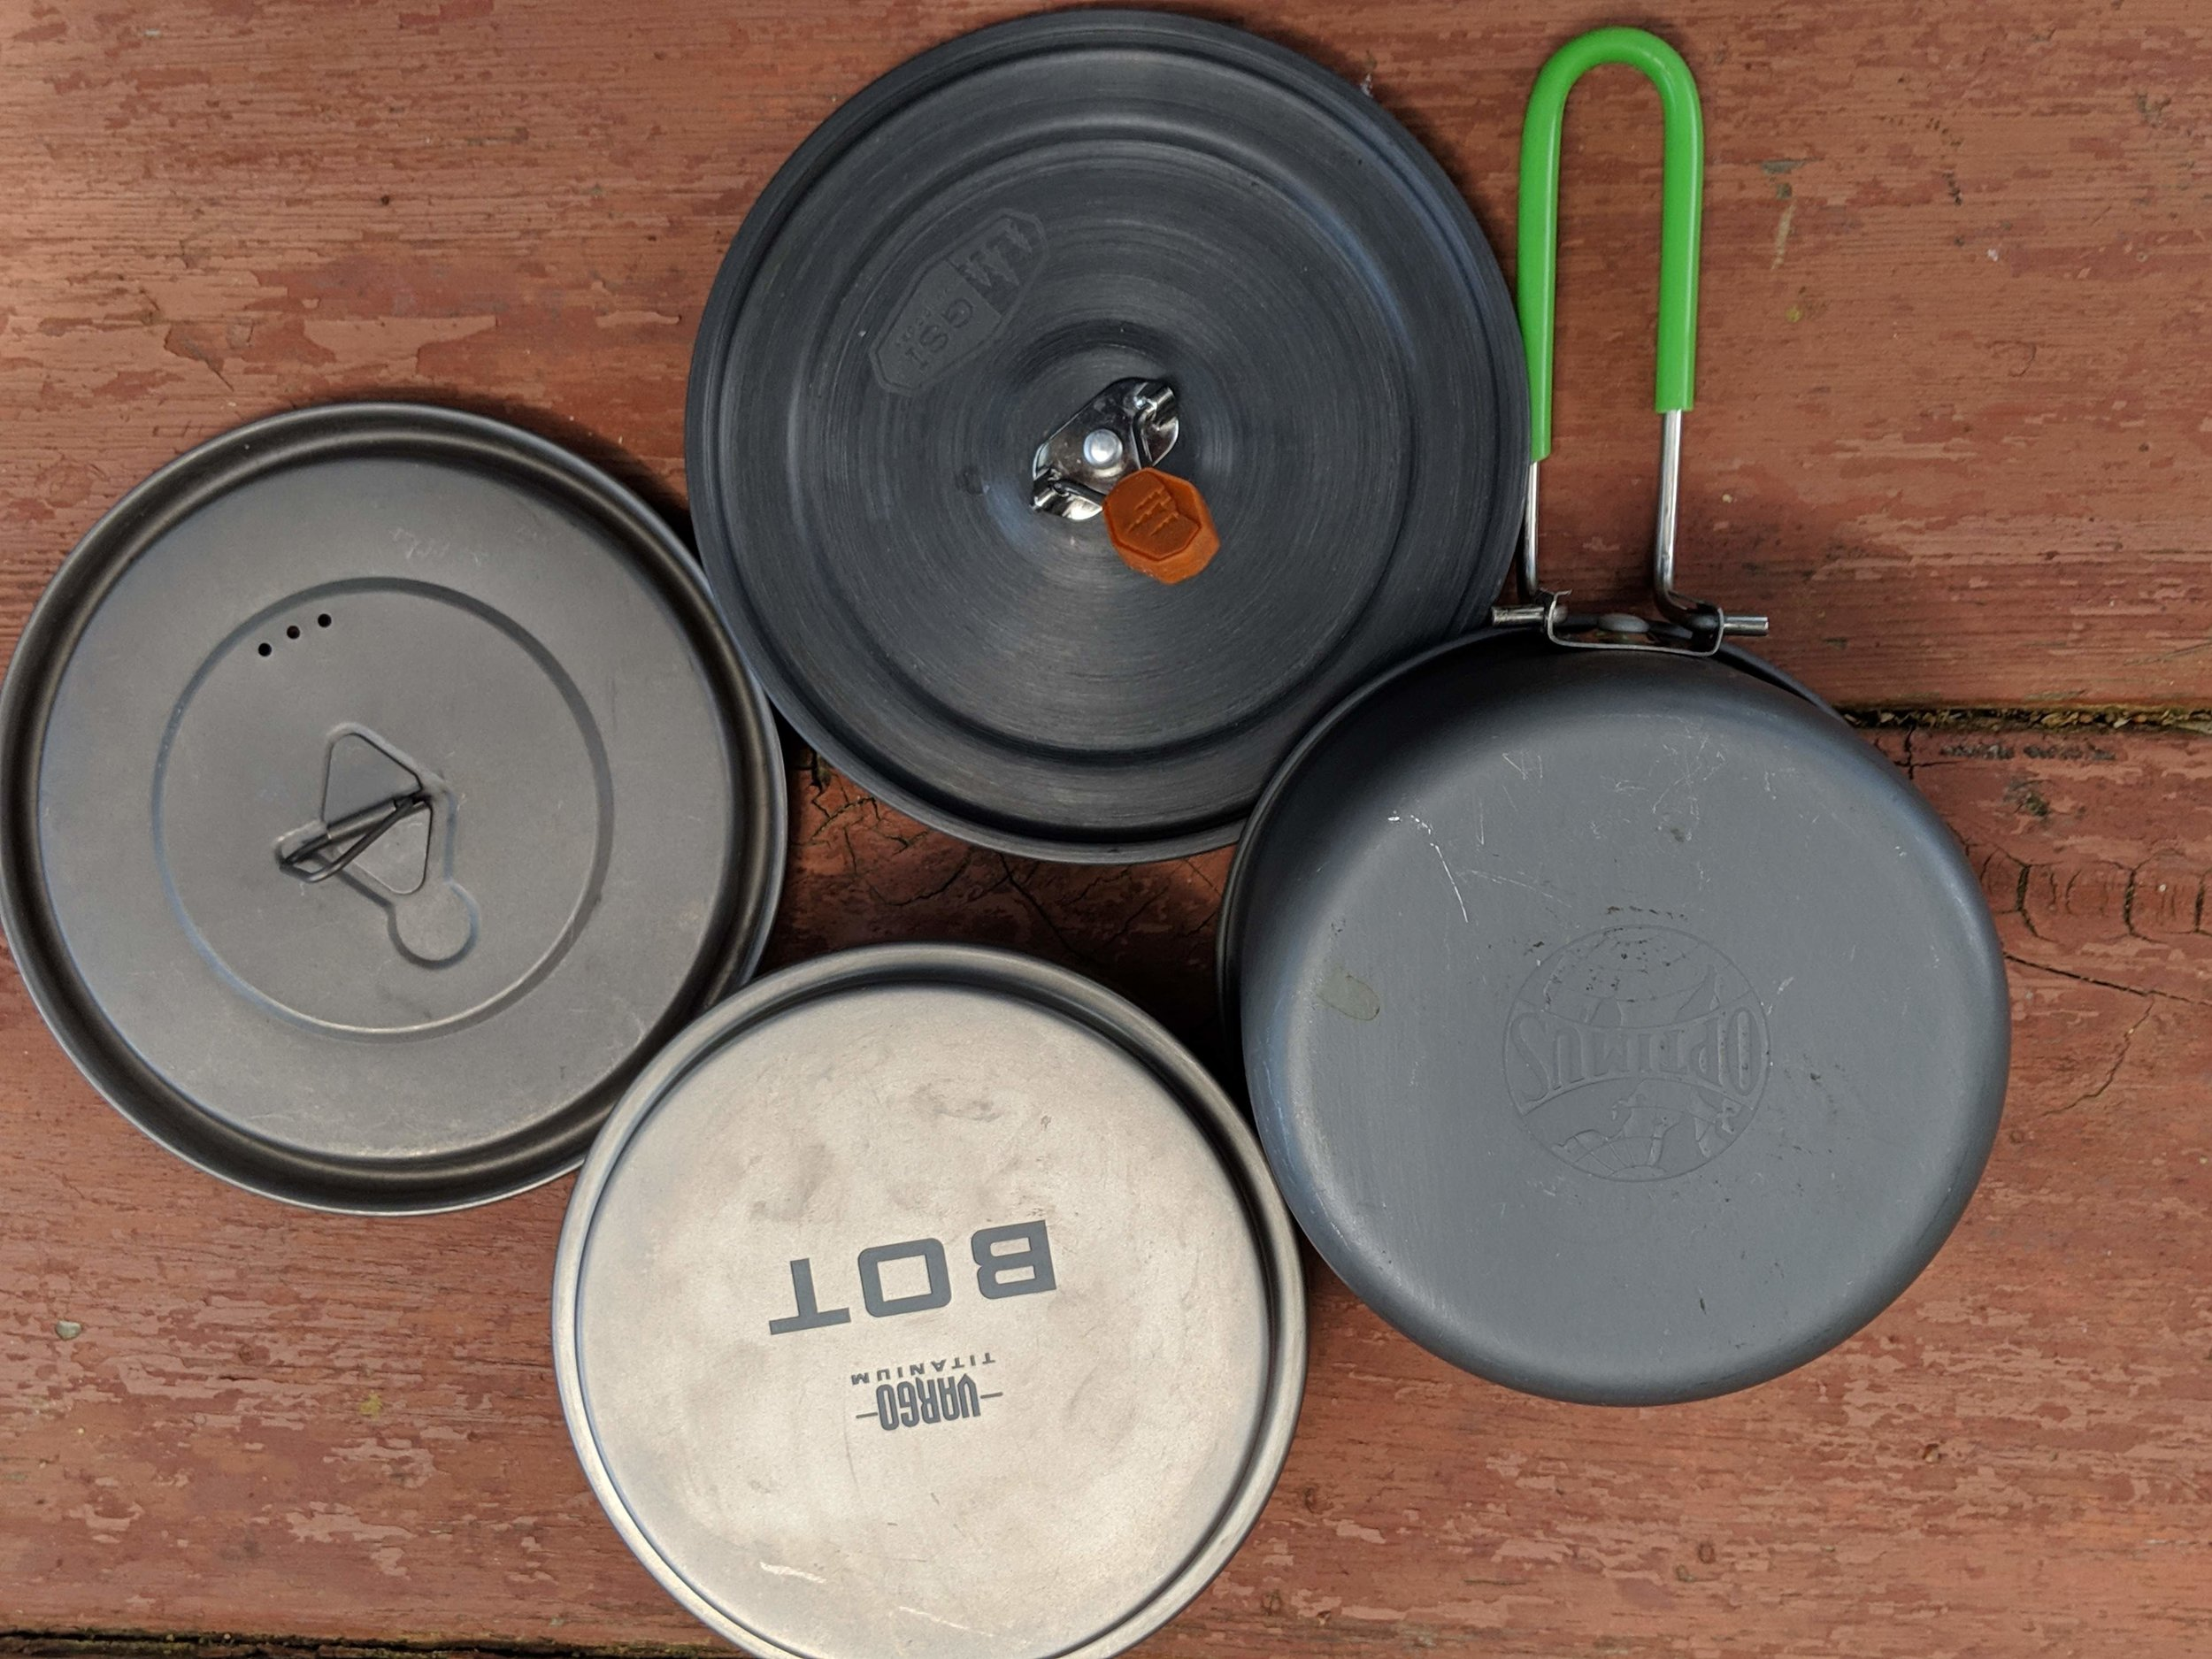 Different pots have different handles, insulation lids, and lips. Photo courtesy Liz Thomas.